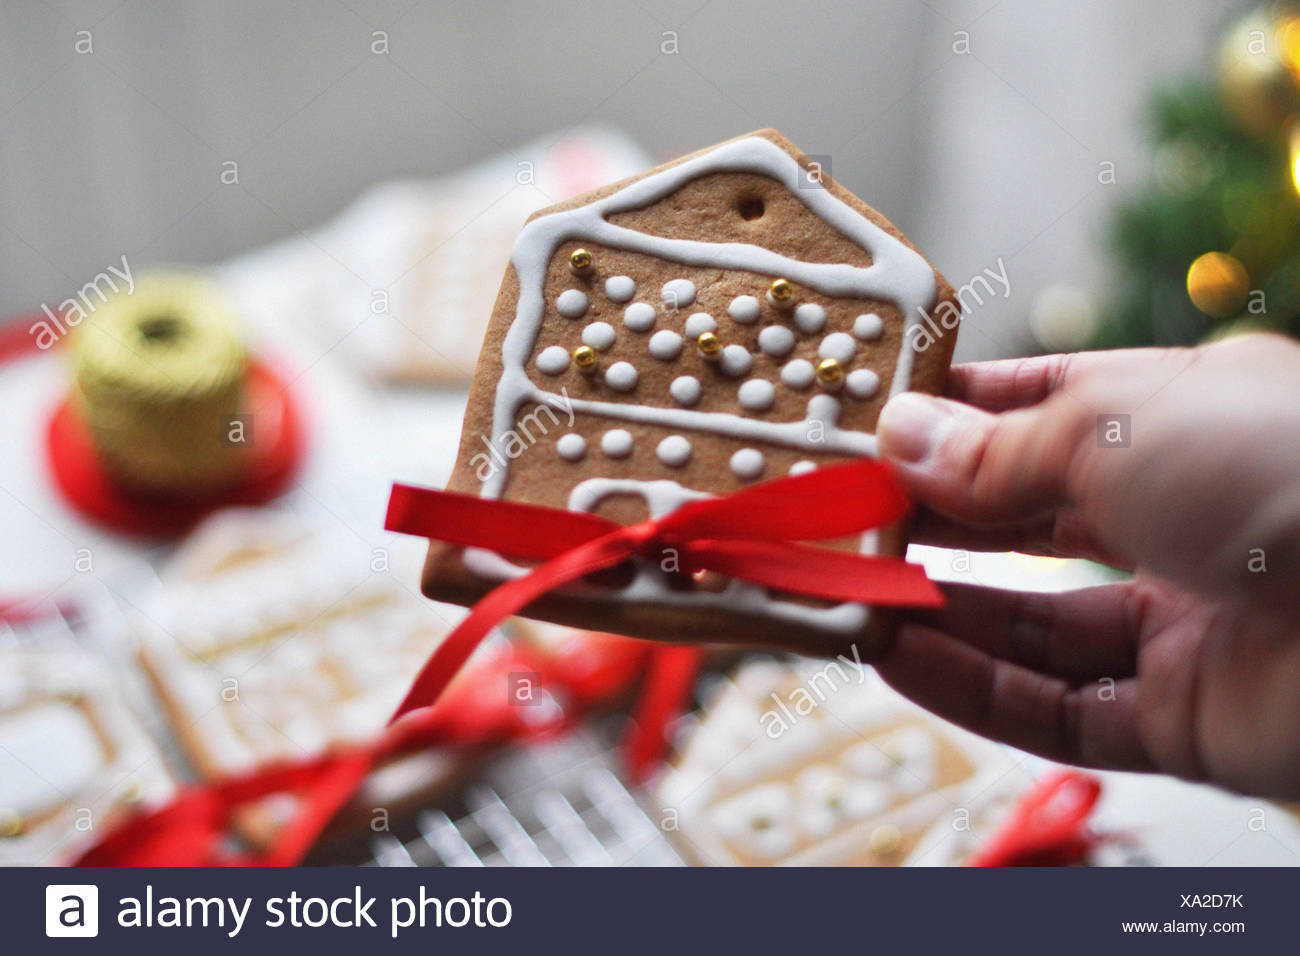 Decorating gingerbread - Stock Image